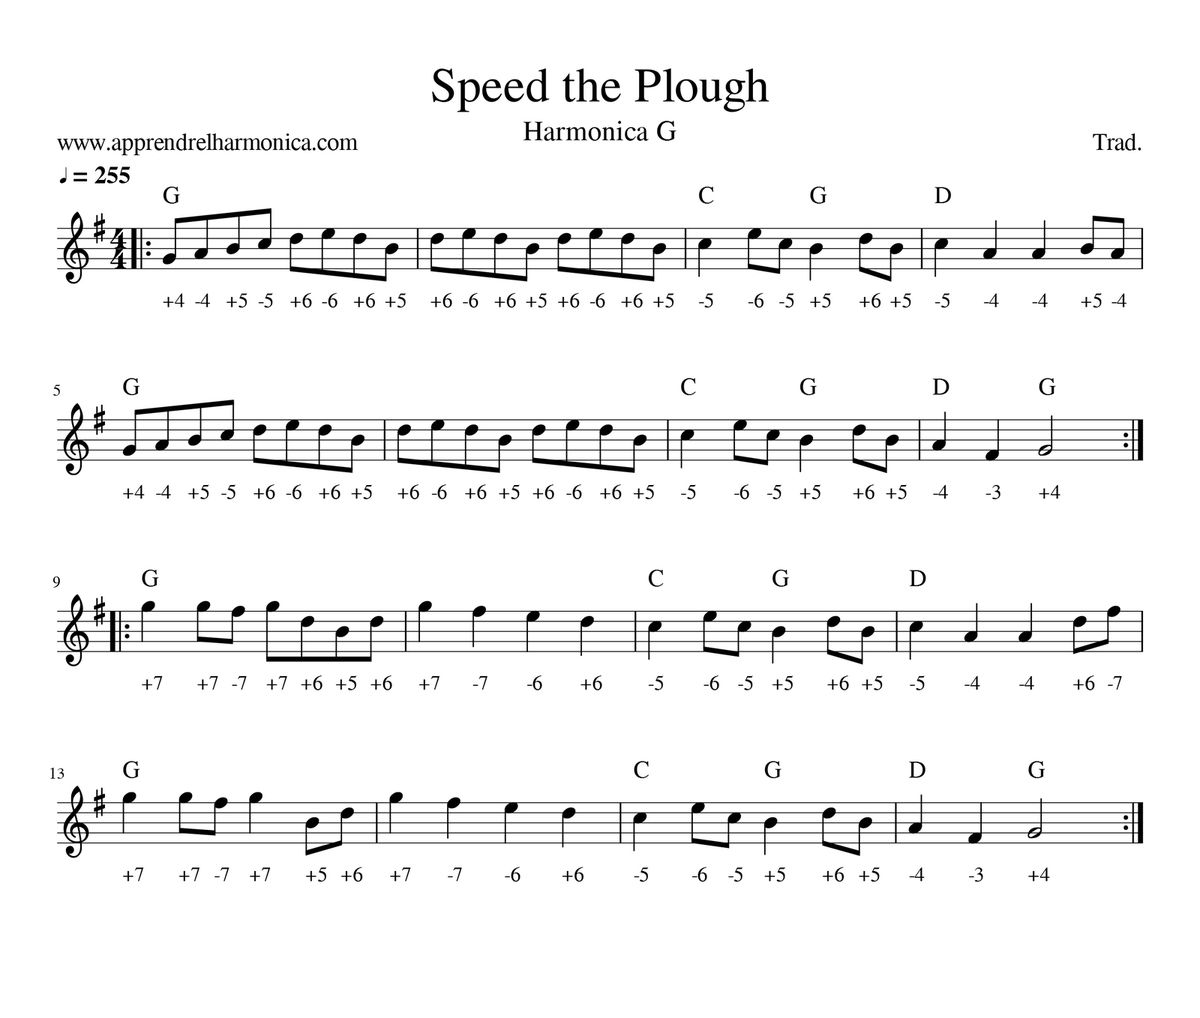 Trad irlandais - Speed the Plough Harmonica G